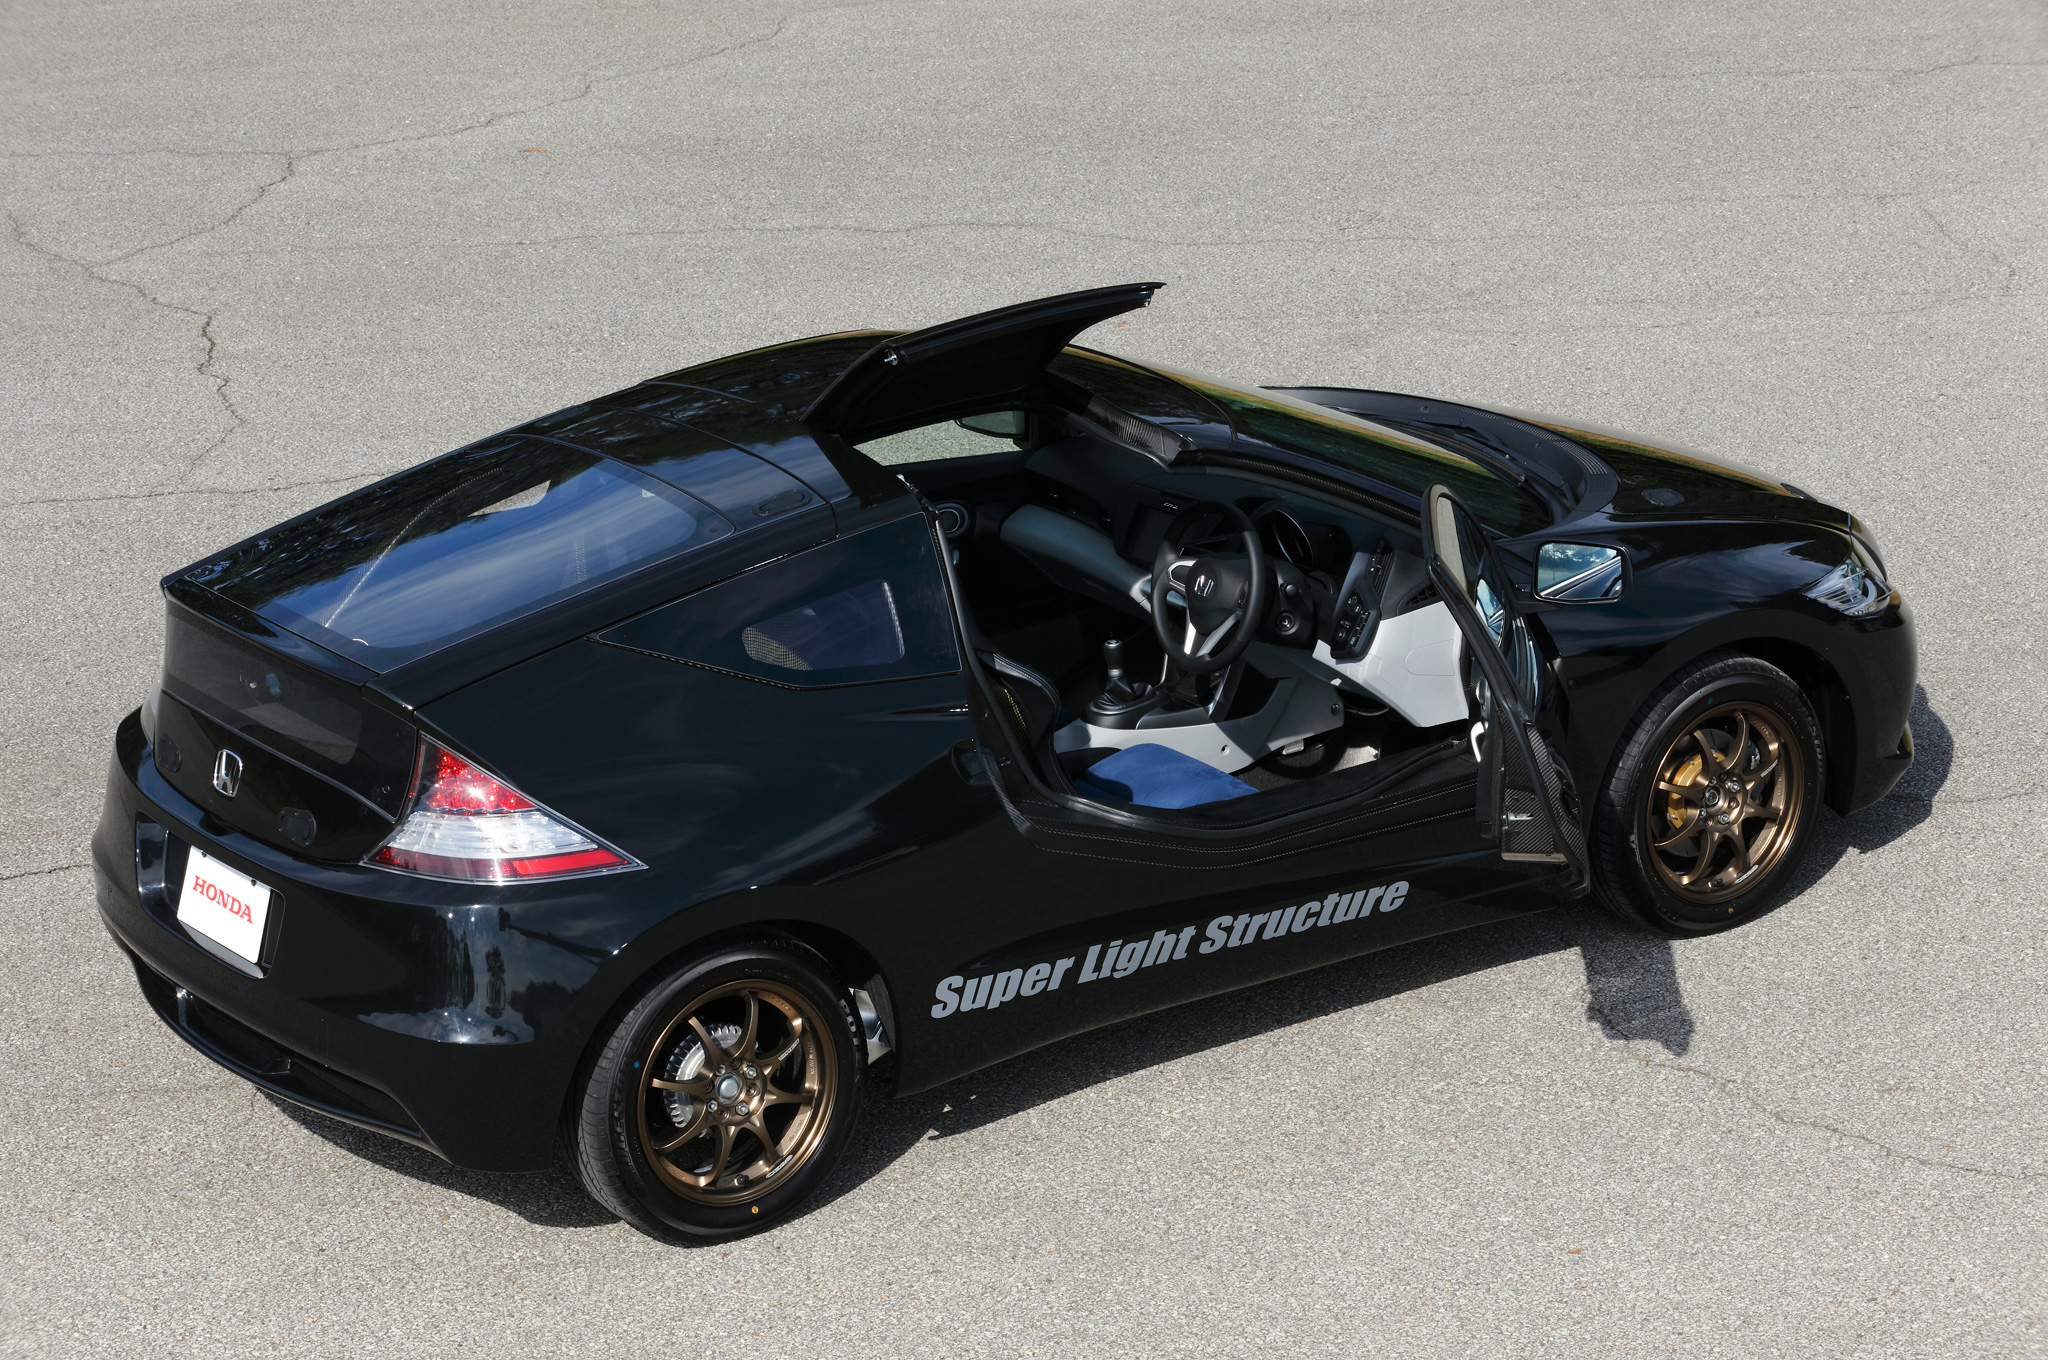 Honda-CR-Z-test-car-super-light-structure-above-side-view Cool Review About 2015 Cr Z with Captivating Pictures Cars Review